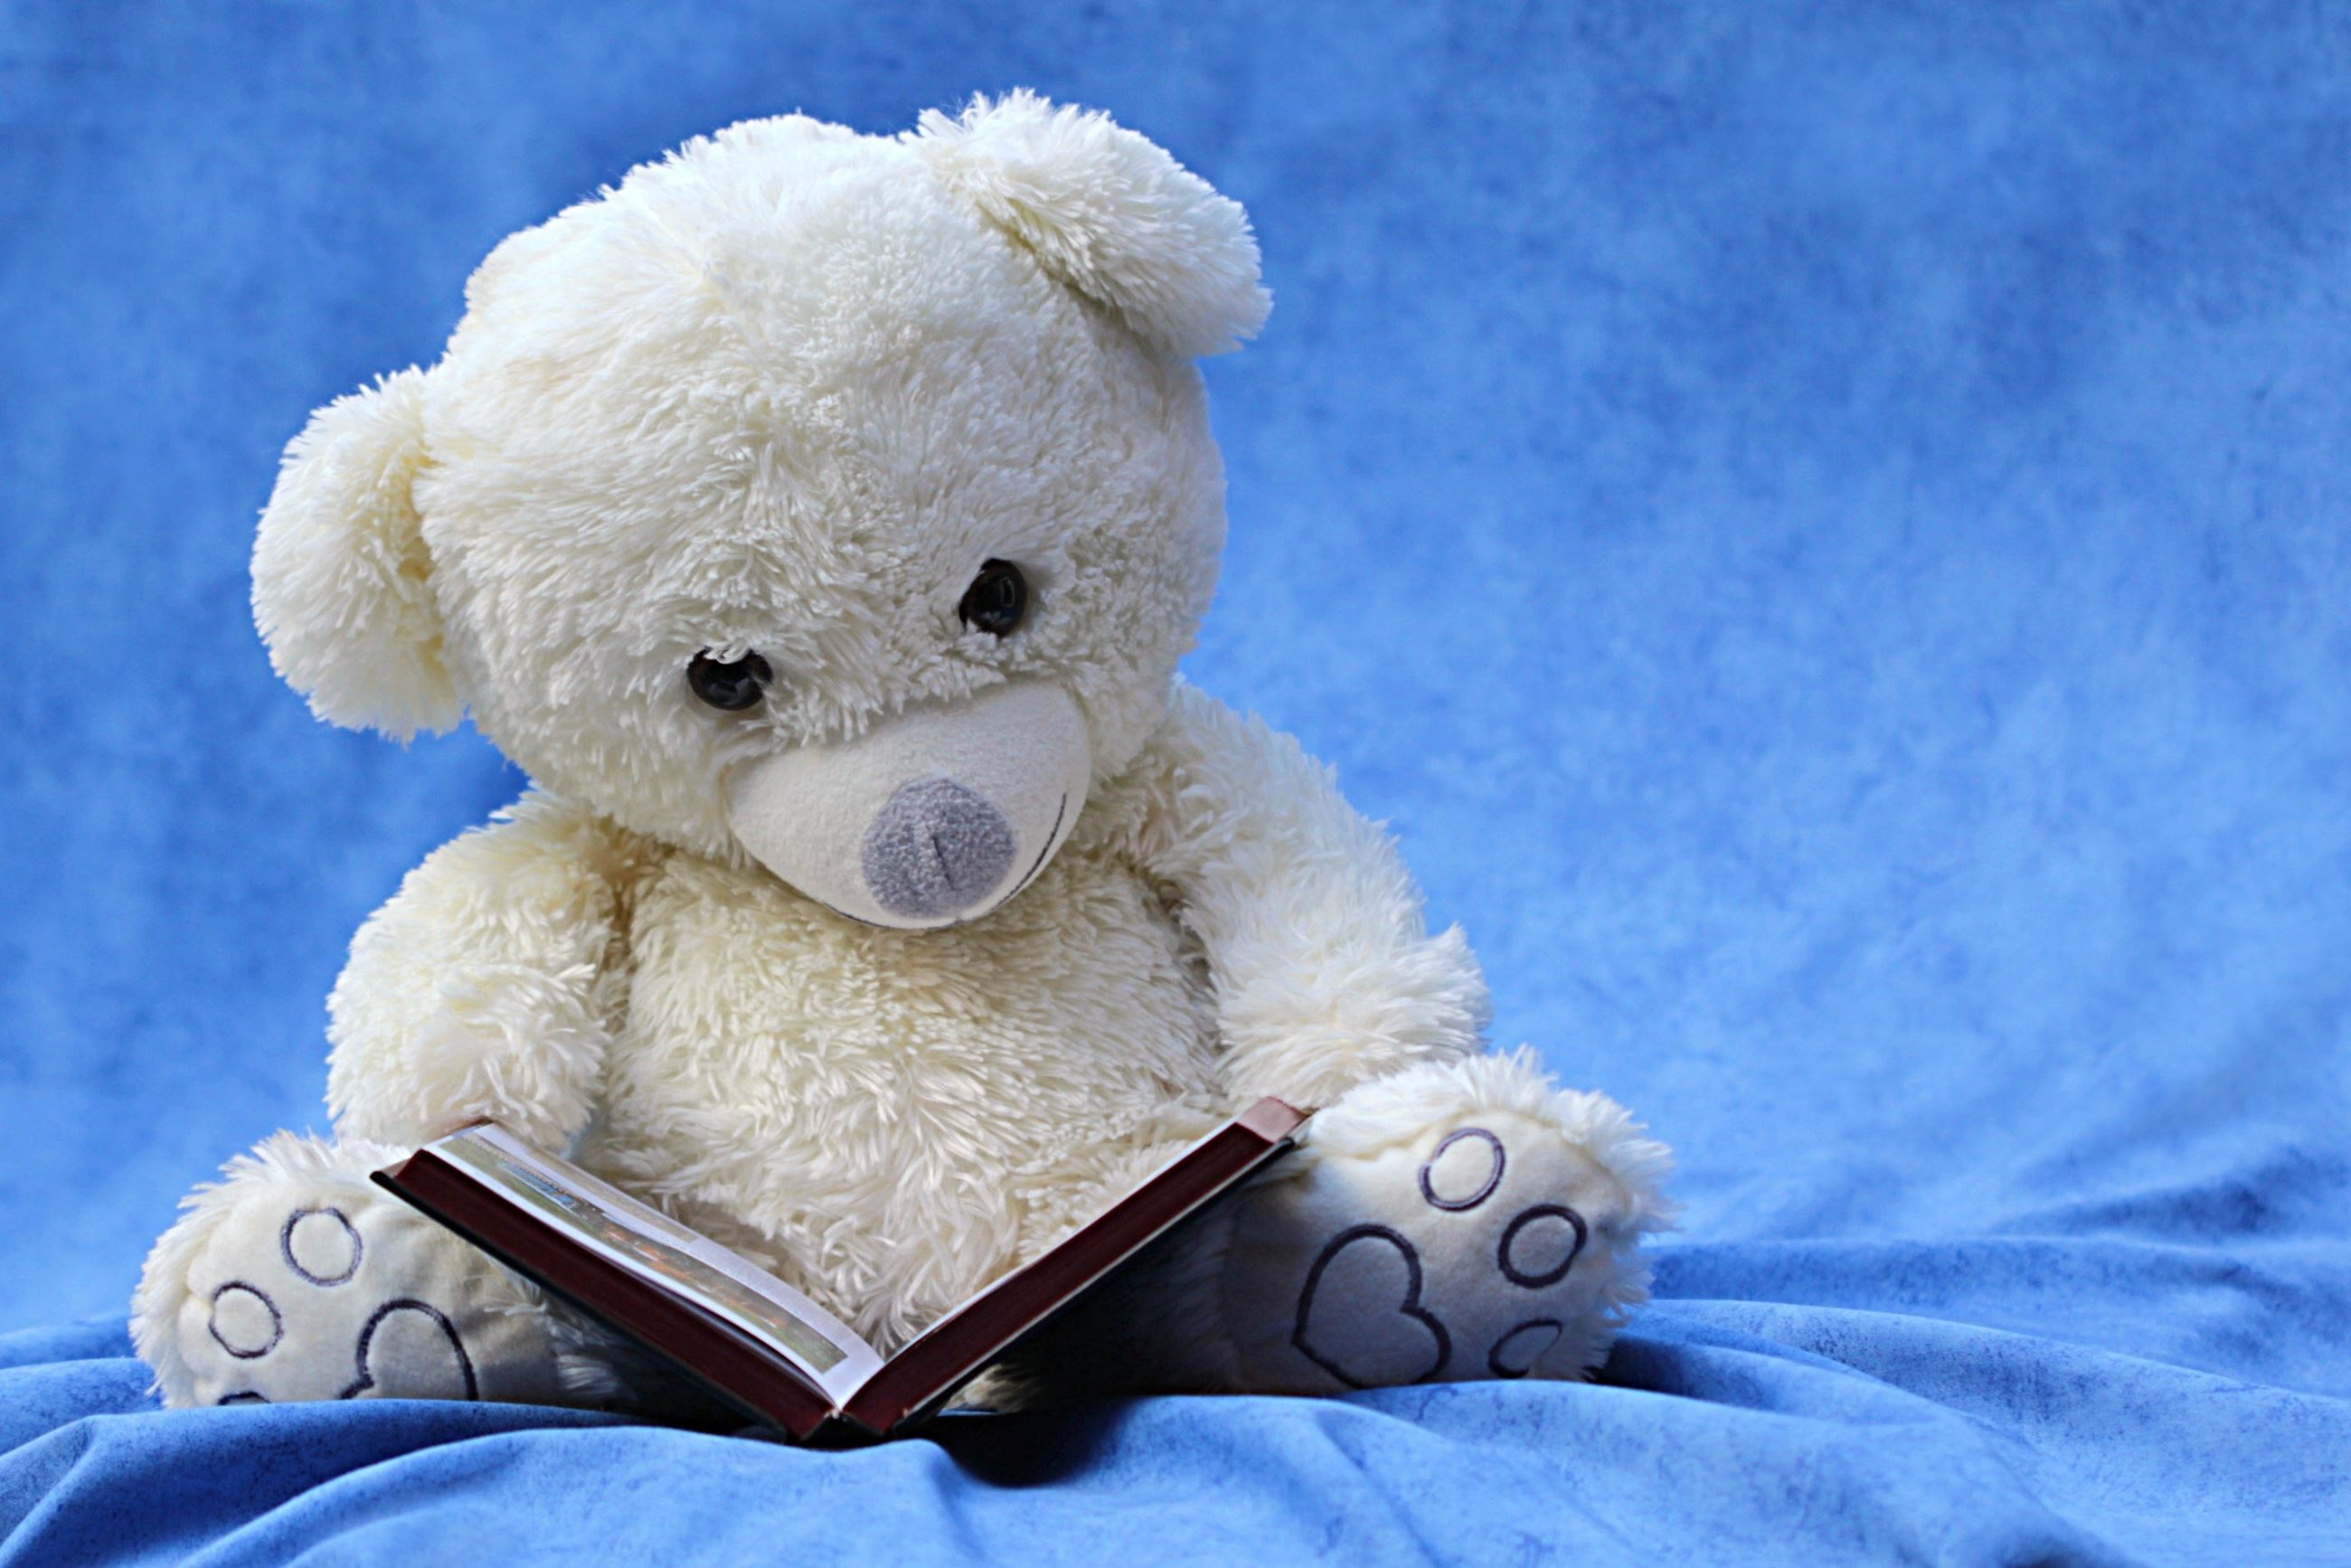 Bear stuffie reading book